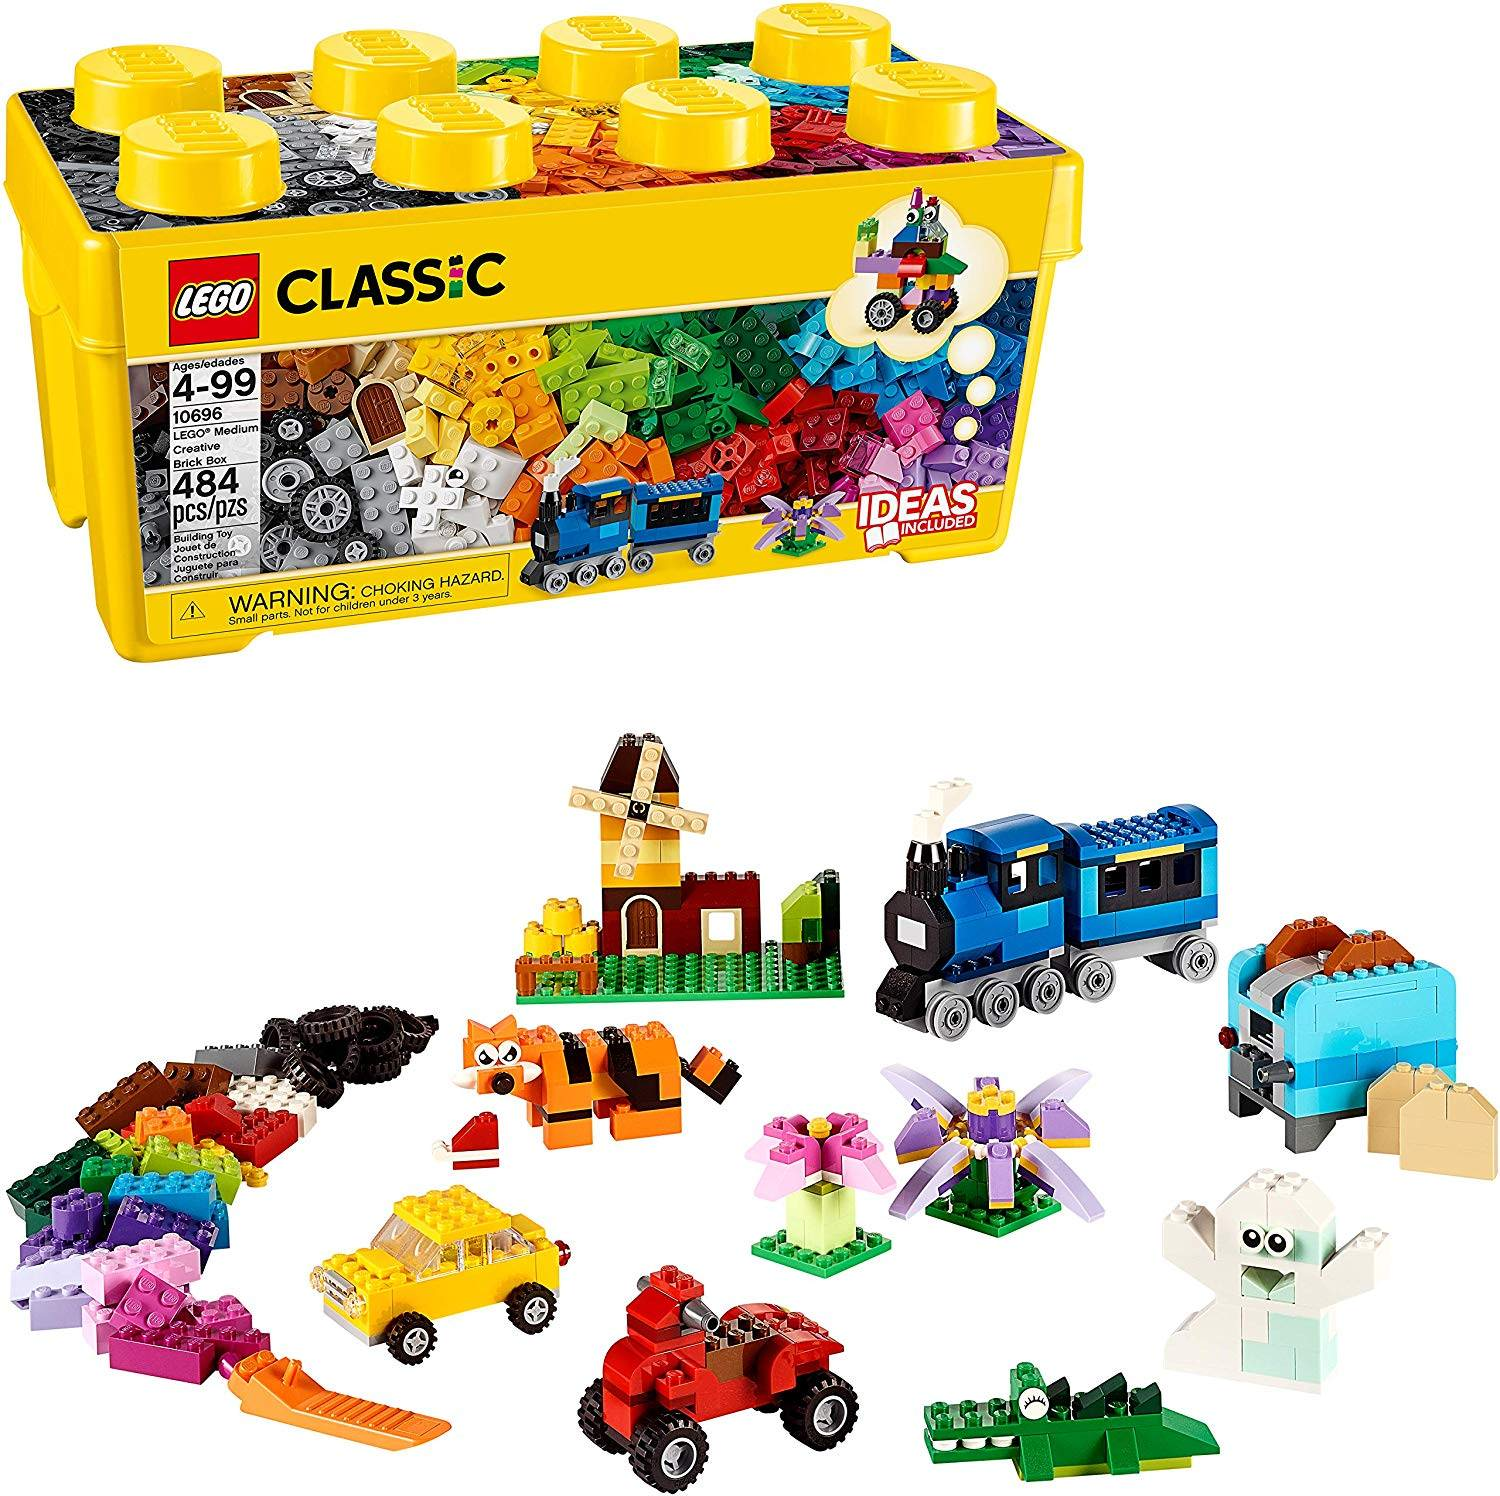 LEGO Classic Medium Creative Brick Box 10696 Building Toys